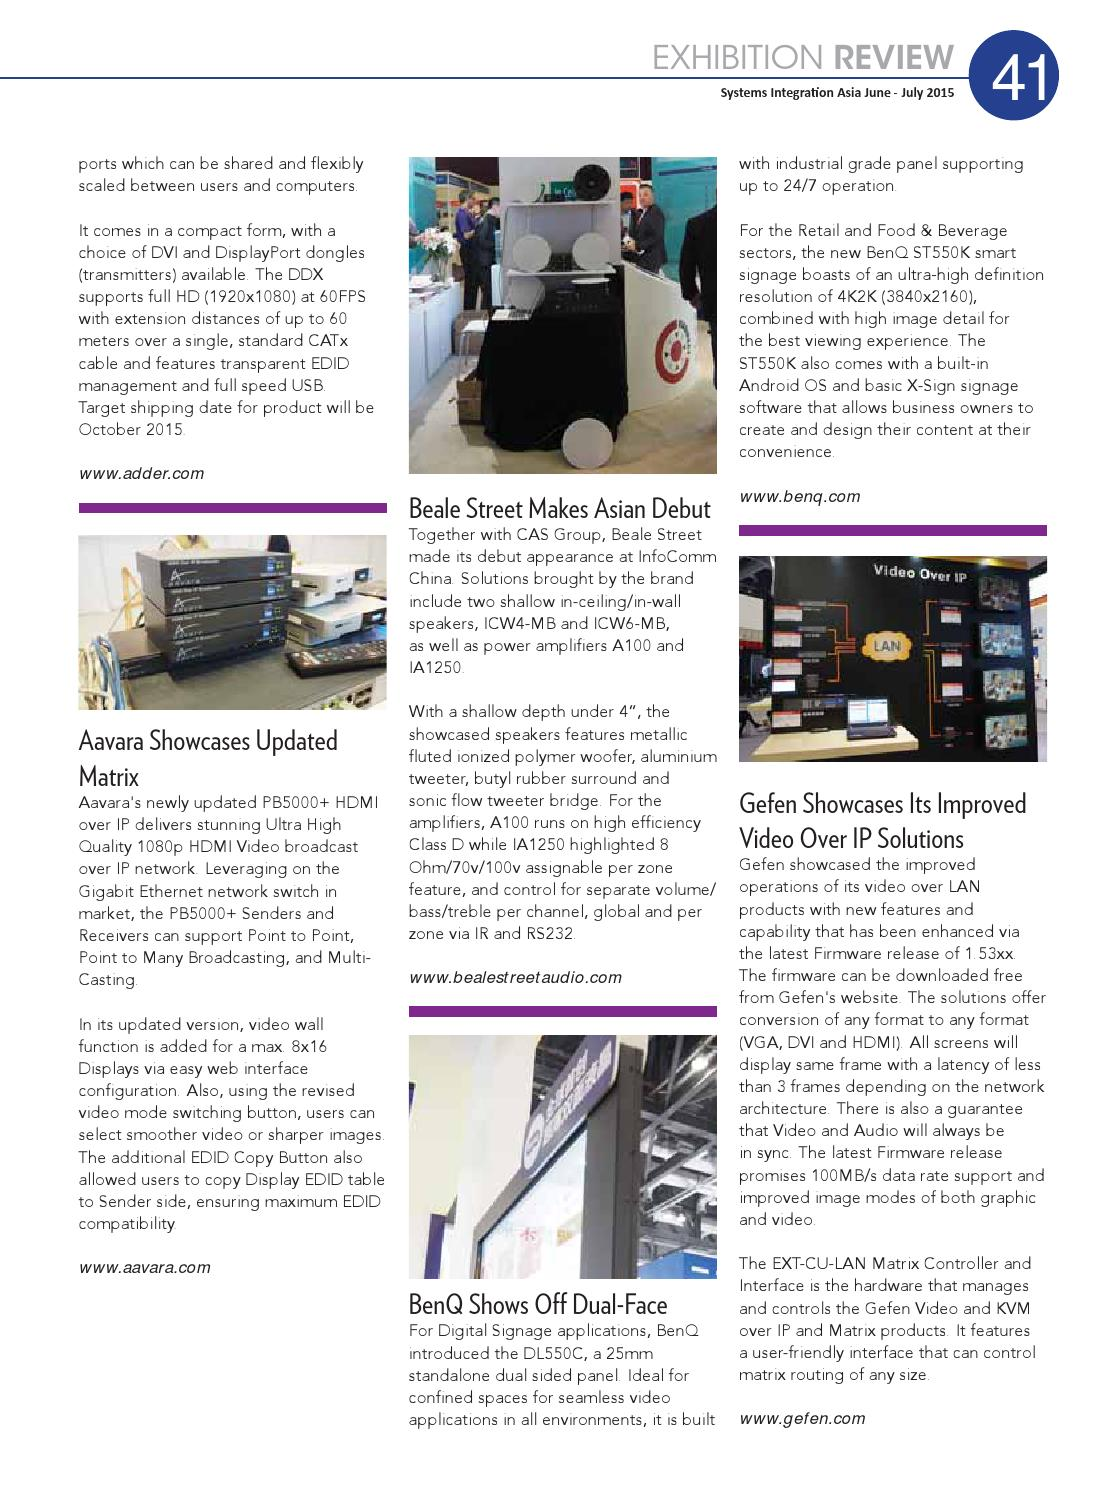 Systems Integration Asia June-July 2015 by Spinworkz Pte Ltd - issuu